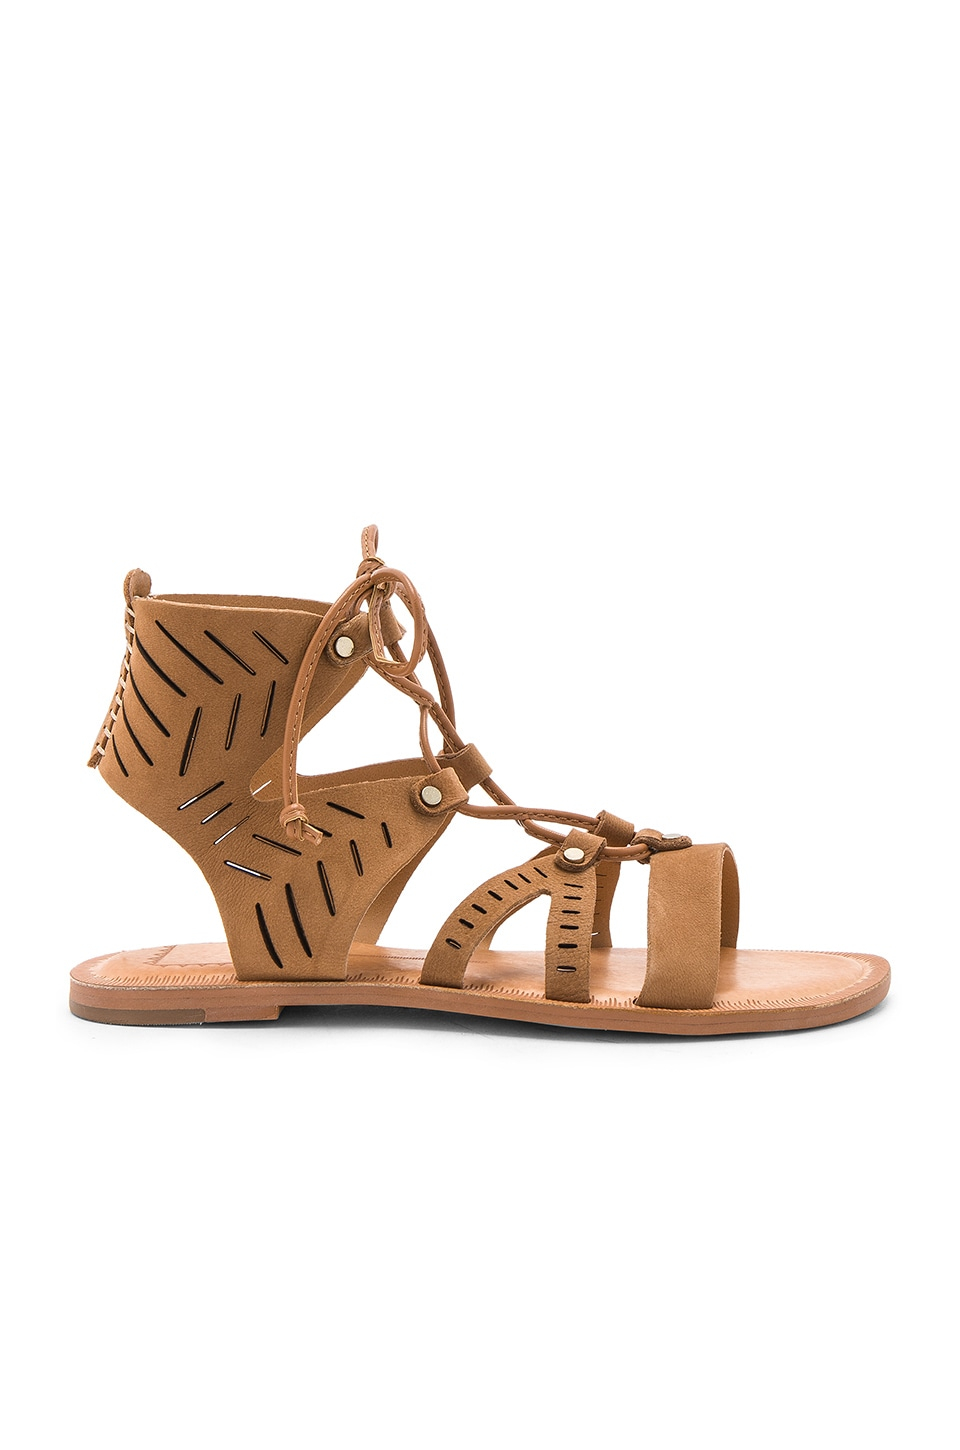 Dolce Vita Juno Sandal in Saddle